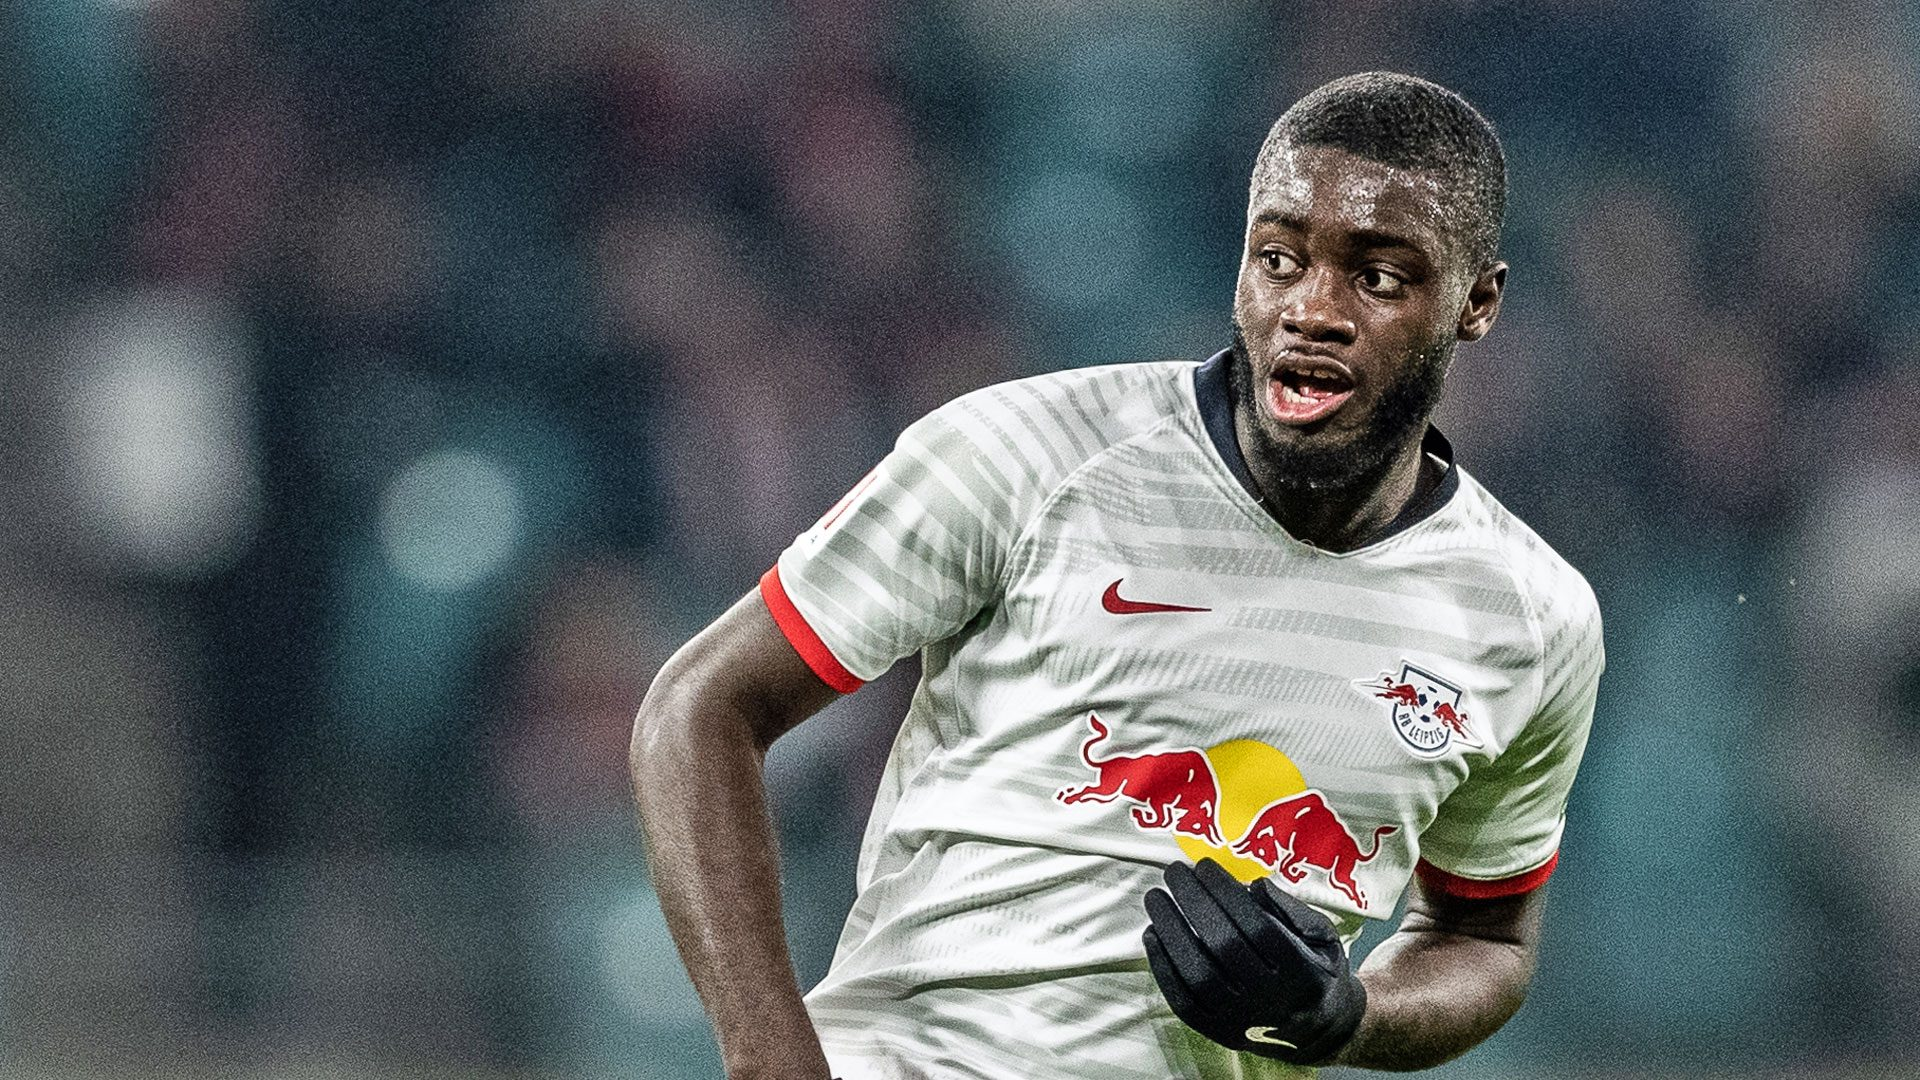 number 7 in the list of world's top 10 centre backs in 2020 is Upamecano